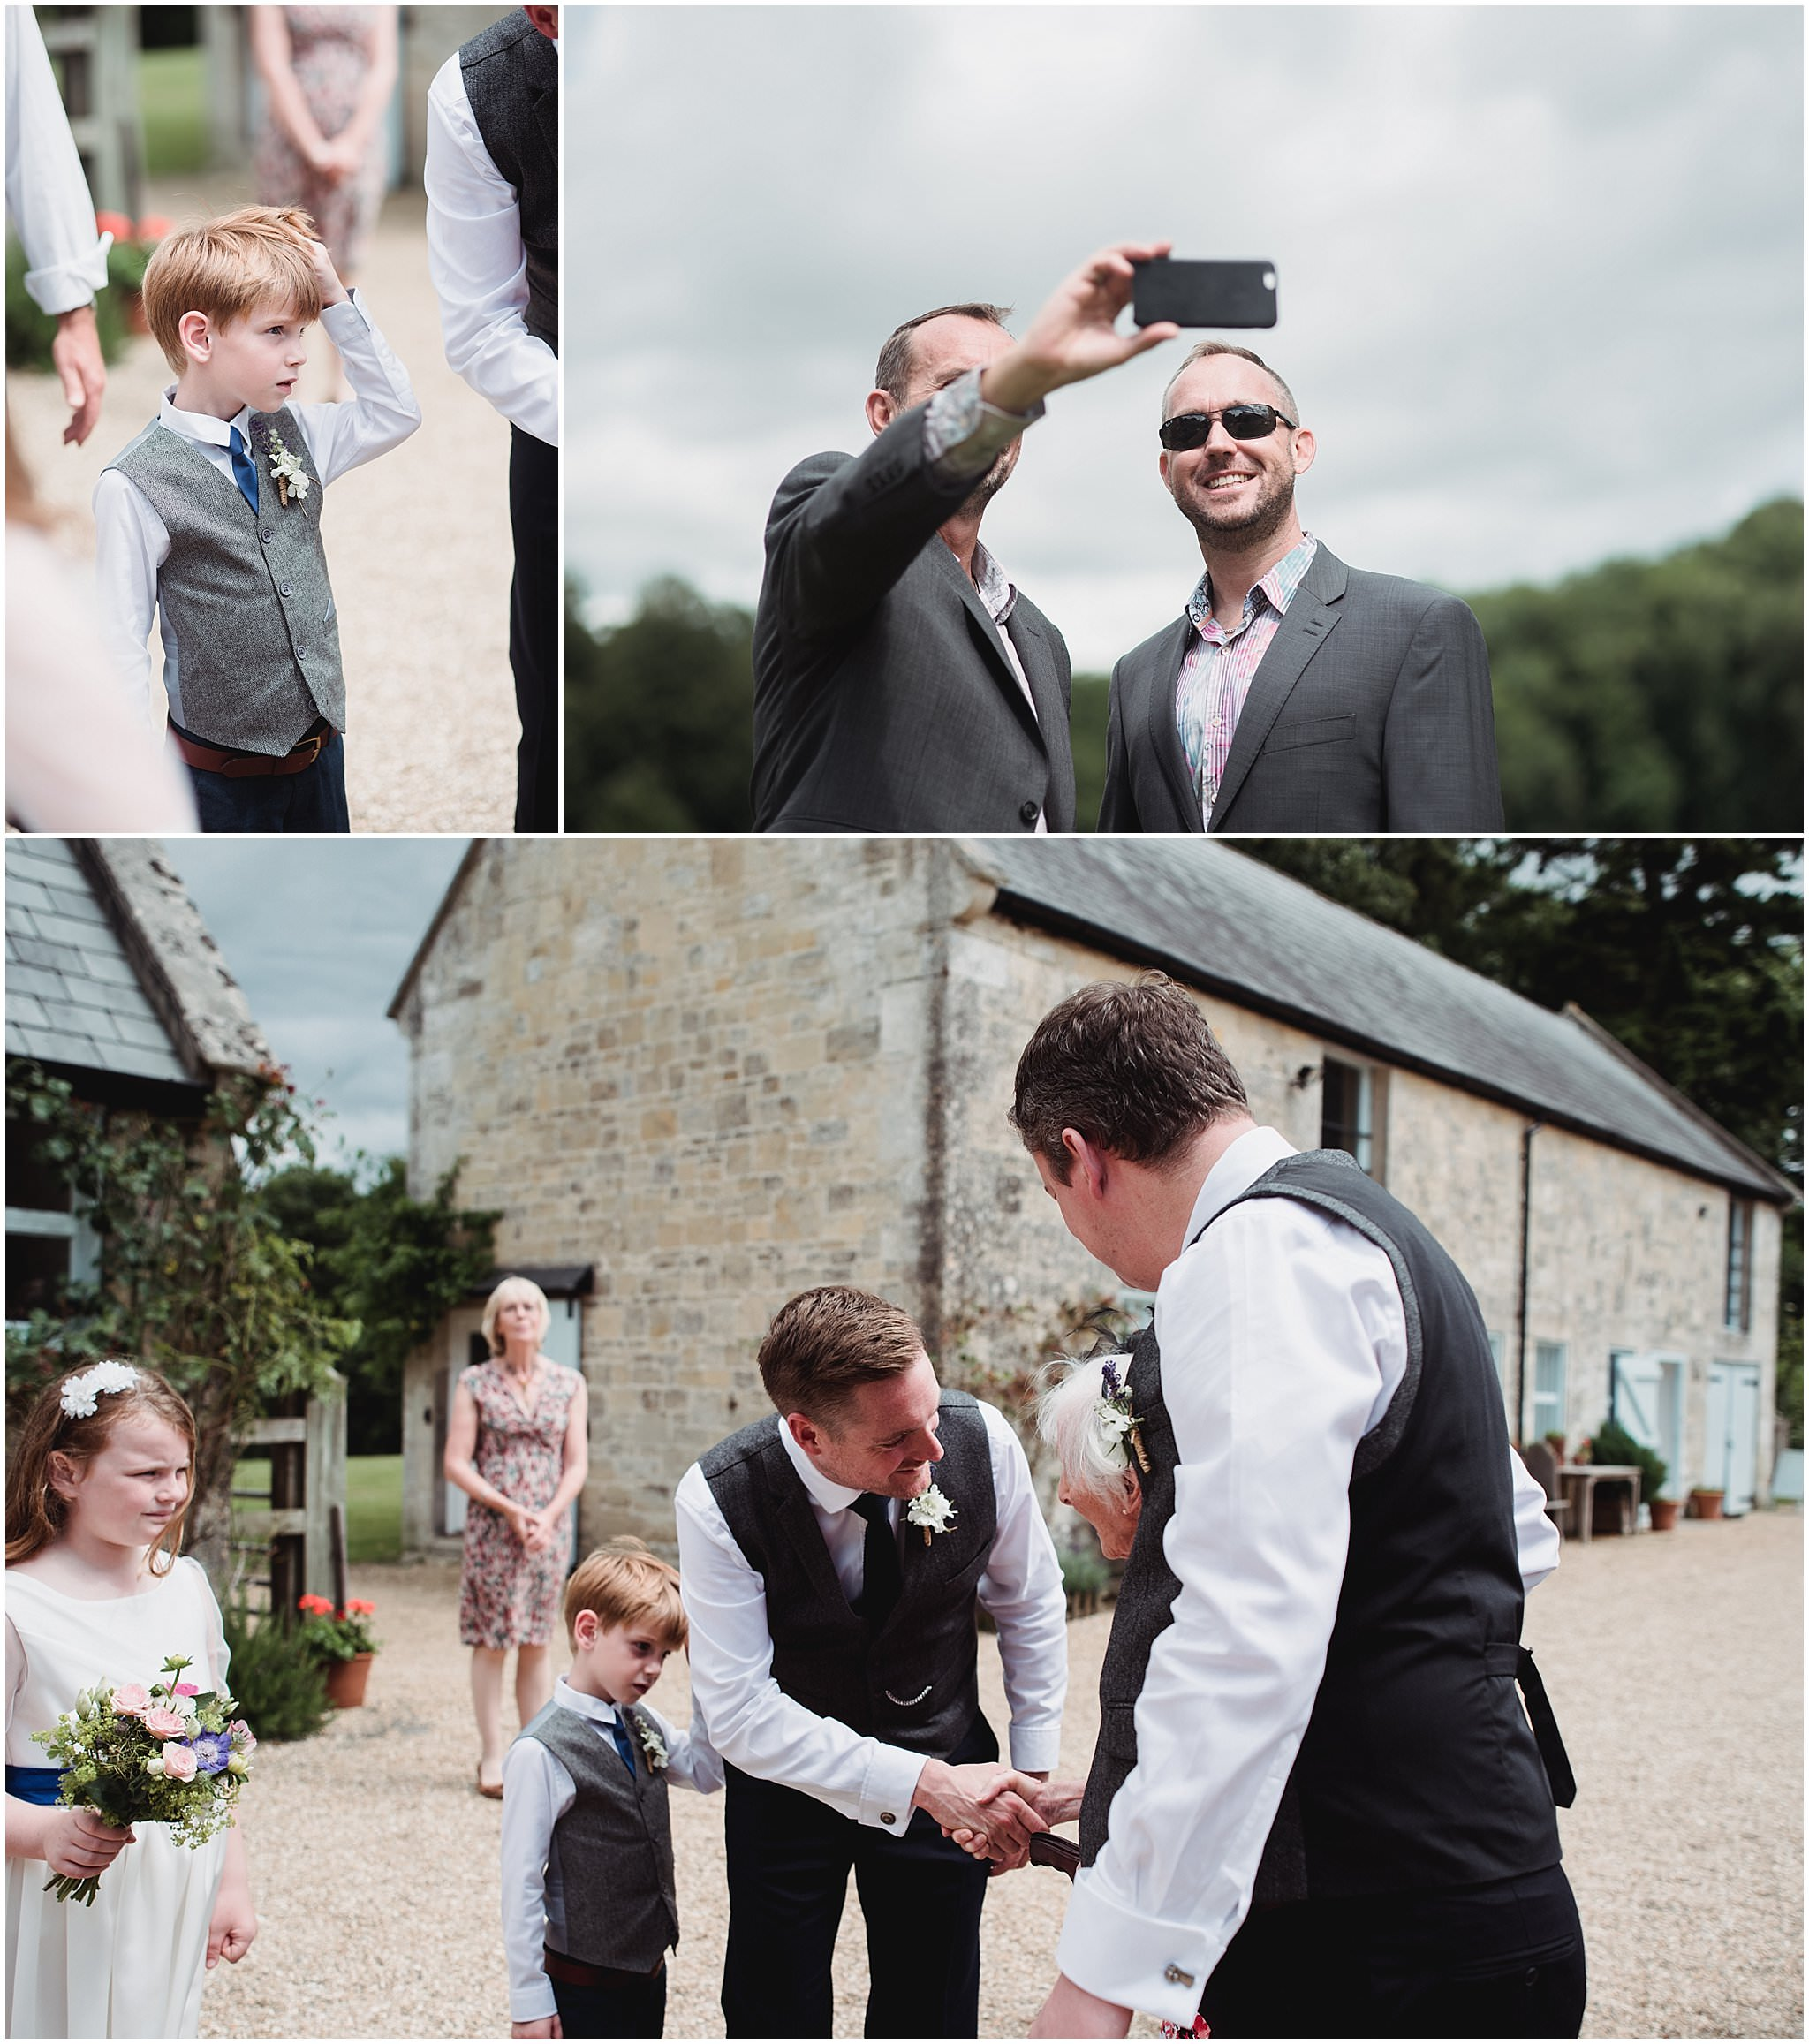 fay & tim wedding at ashley wood farm_0454